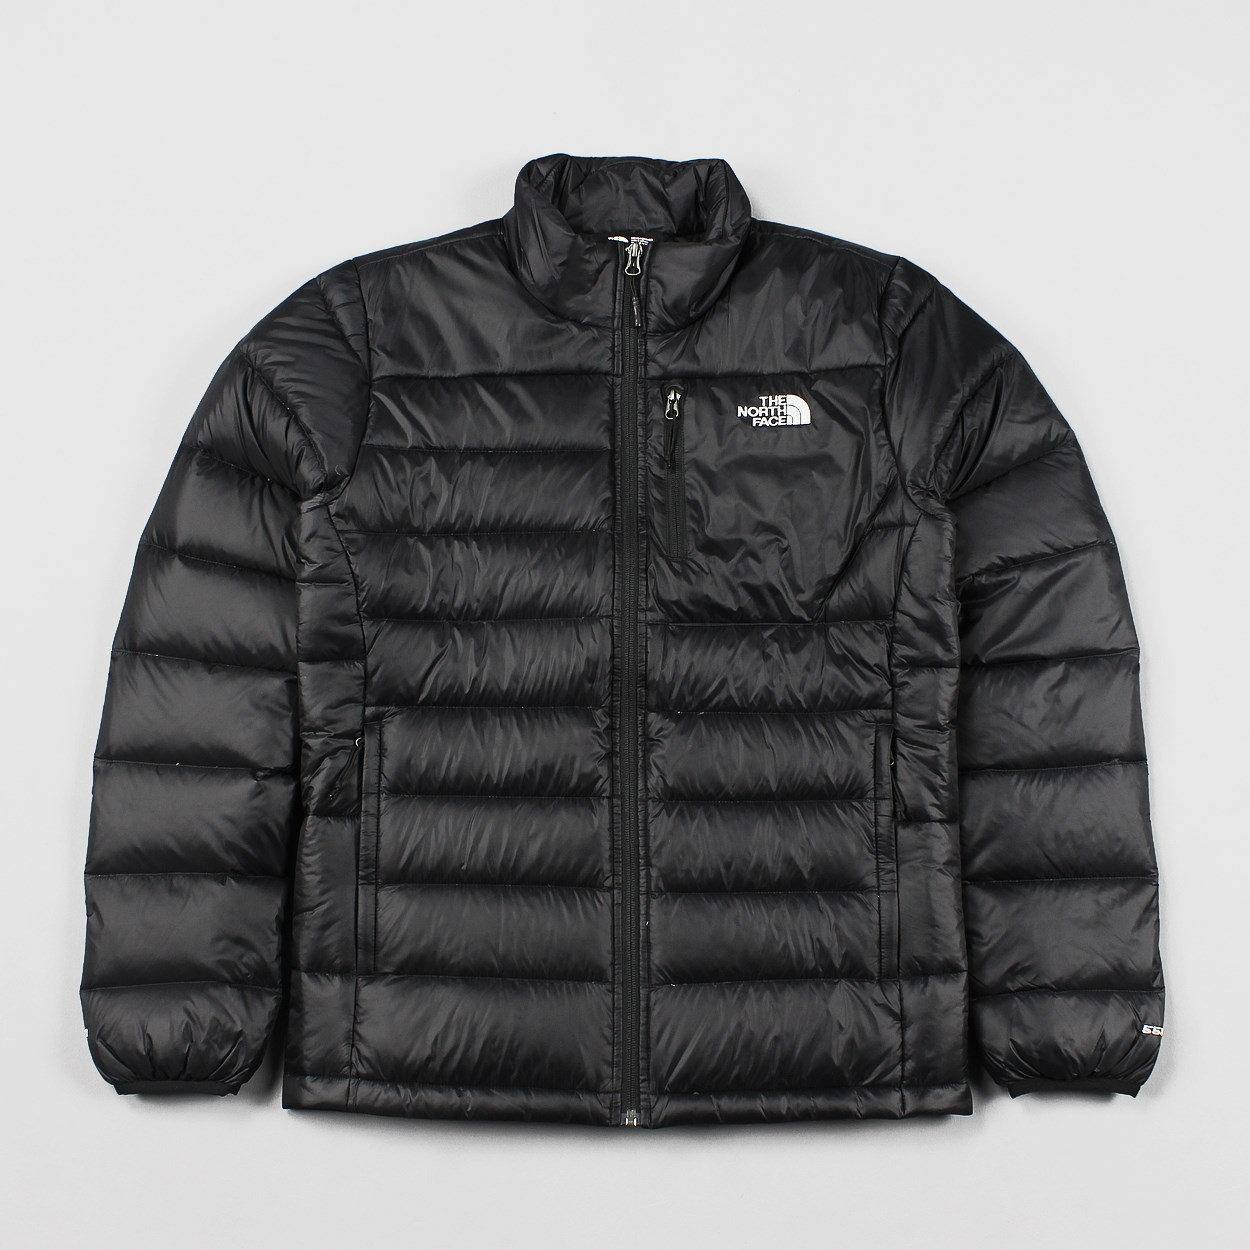 Fuse Box Charged Backpack Uk Wiring Diagrams Distribution Board The North Face Mens Insulated Down Aconcagua Jacket Coat Old